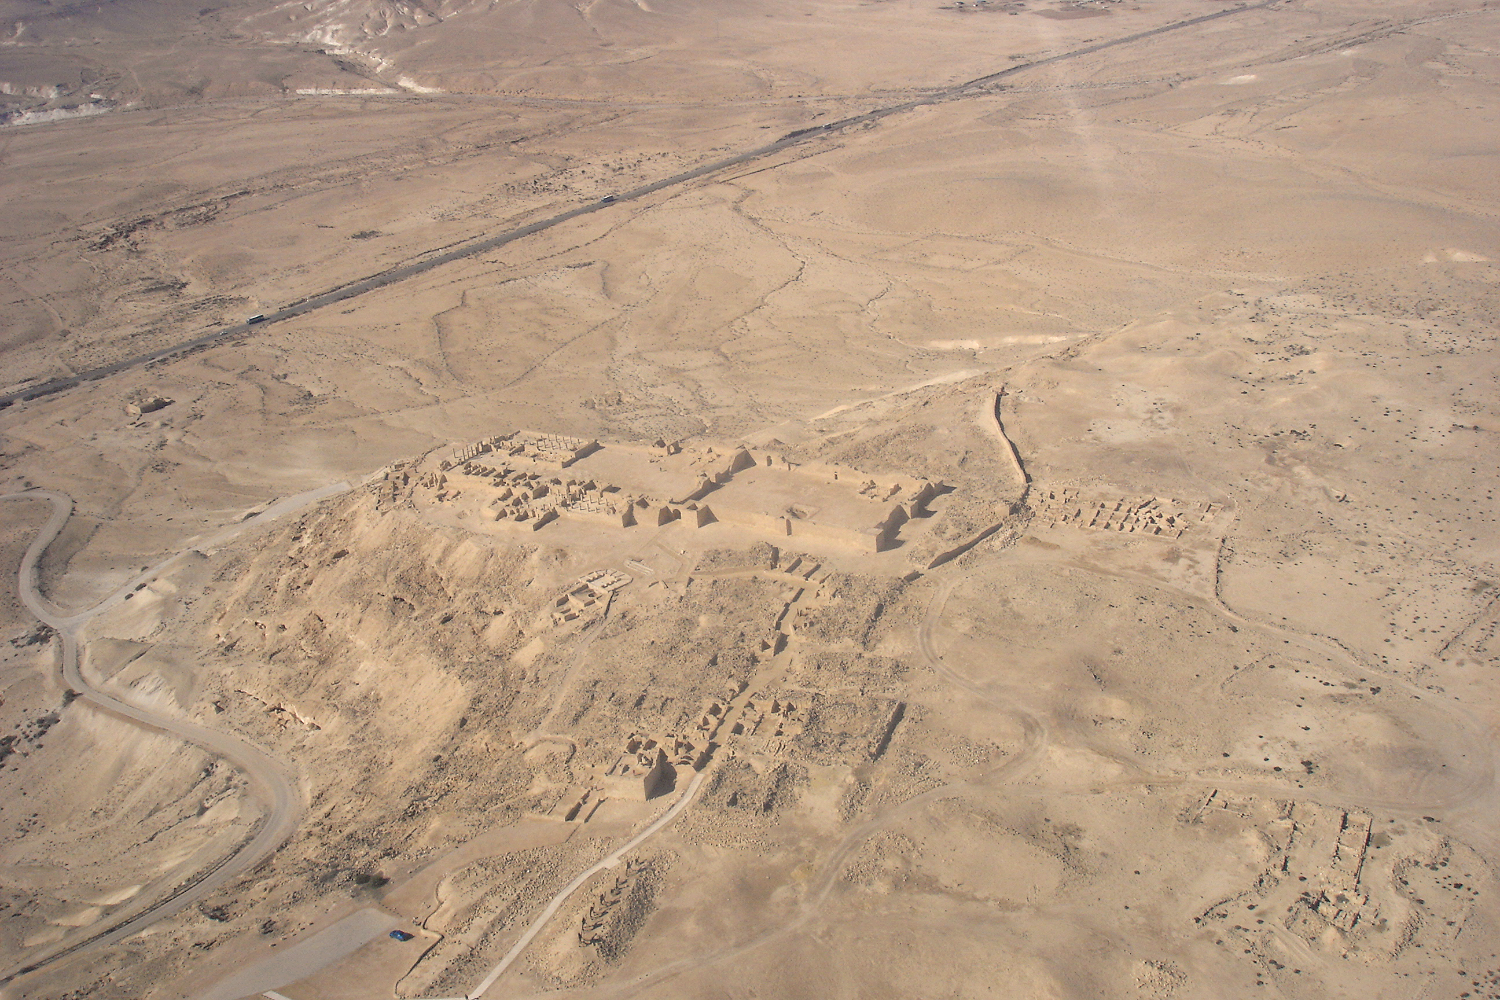 Helicopter desert touring in Israel